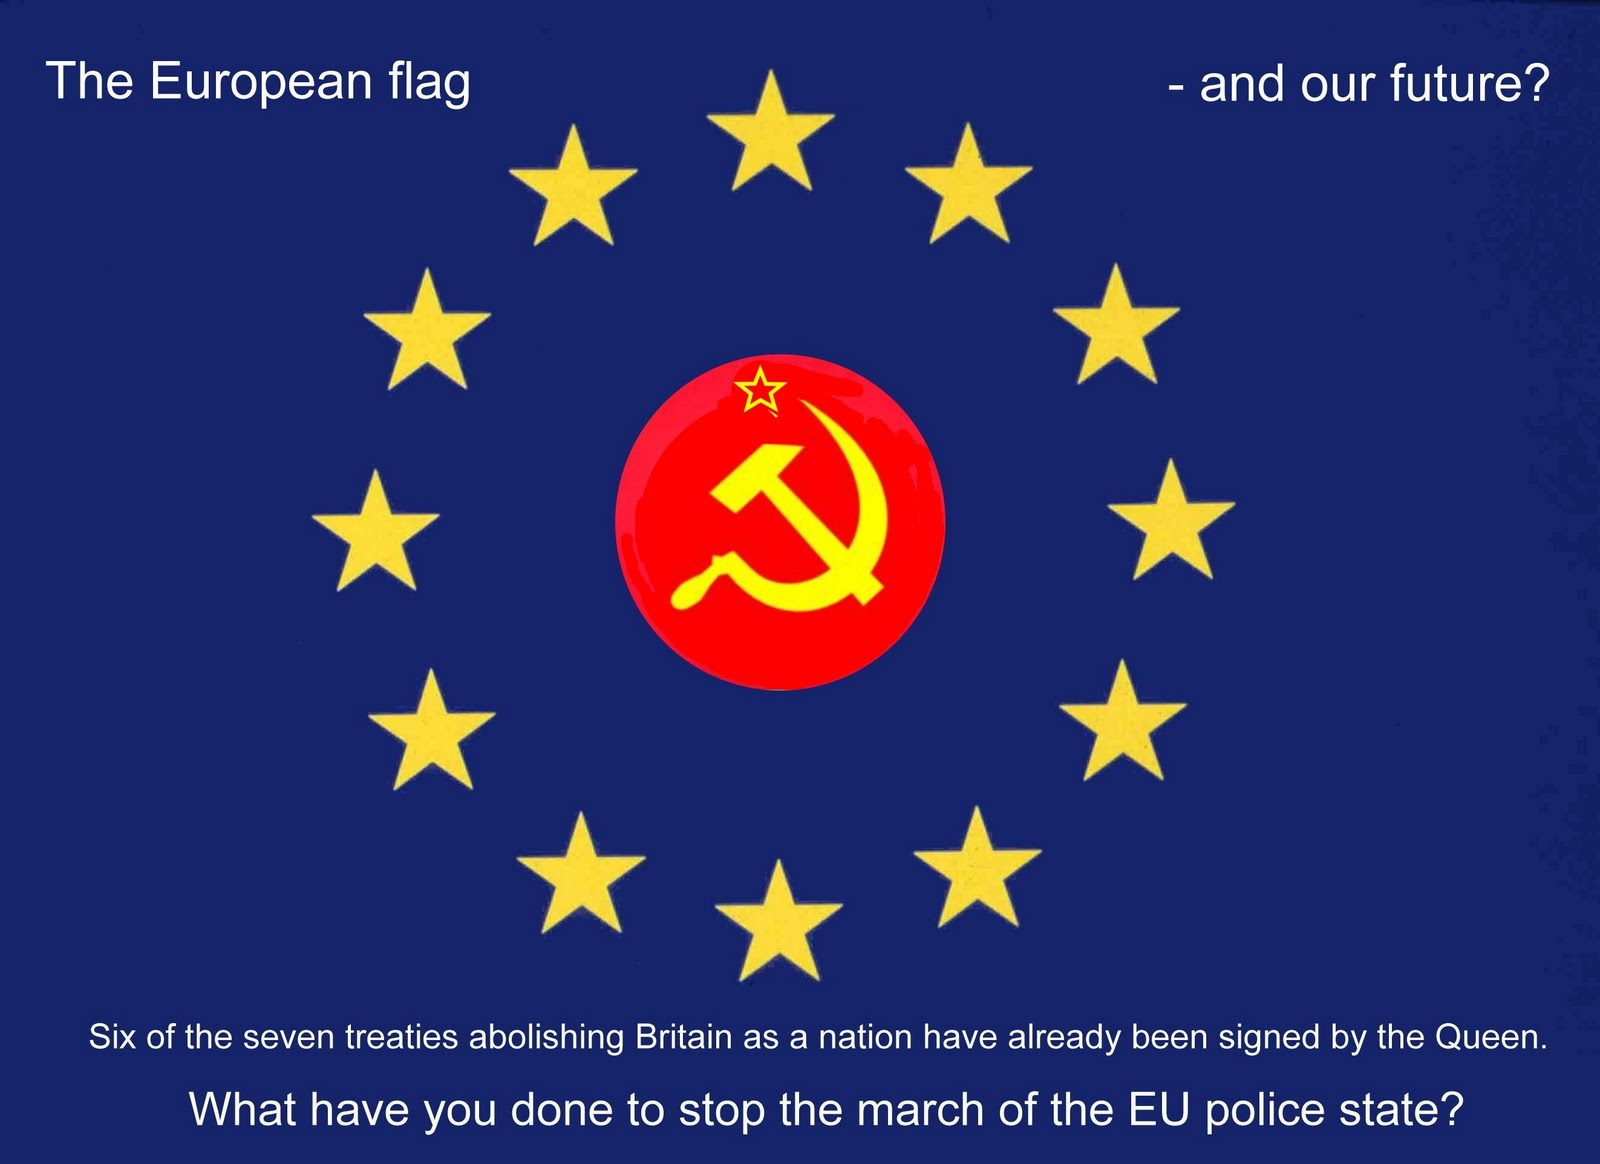 an analysis of the soviet union as the european country throughout history To ensure their objectives, the soviet union established the soviet alliance system in 1943, which enabled them to institute military and political control over eastern european countries.